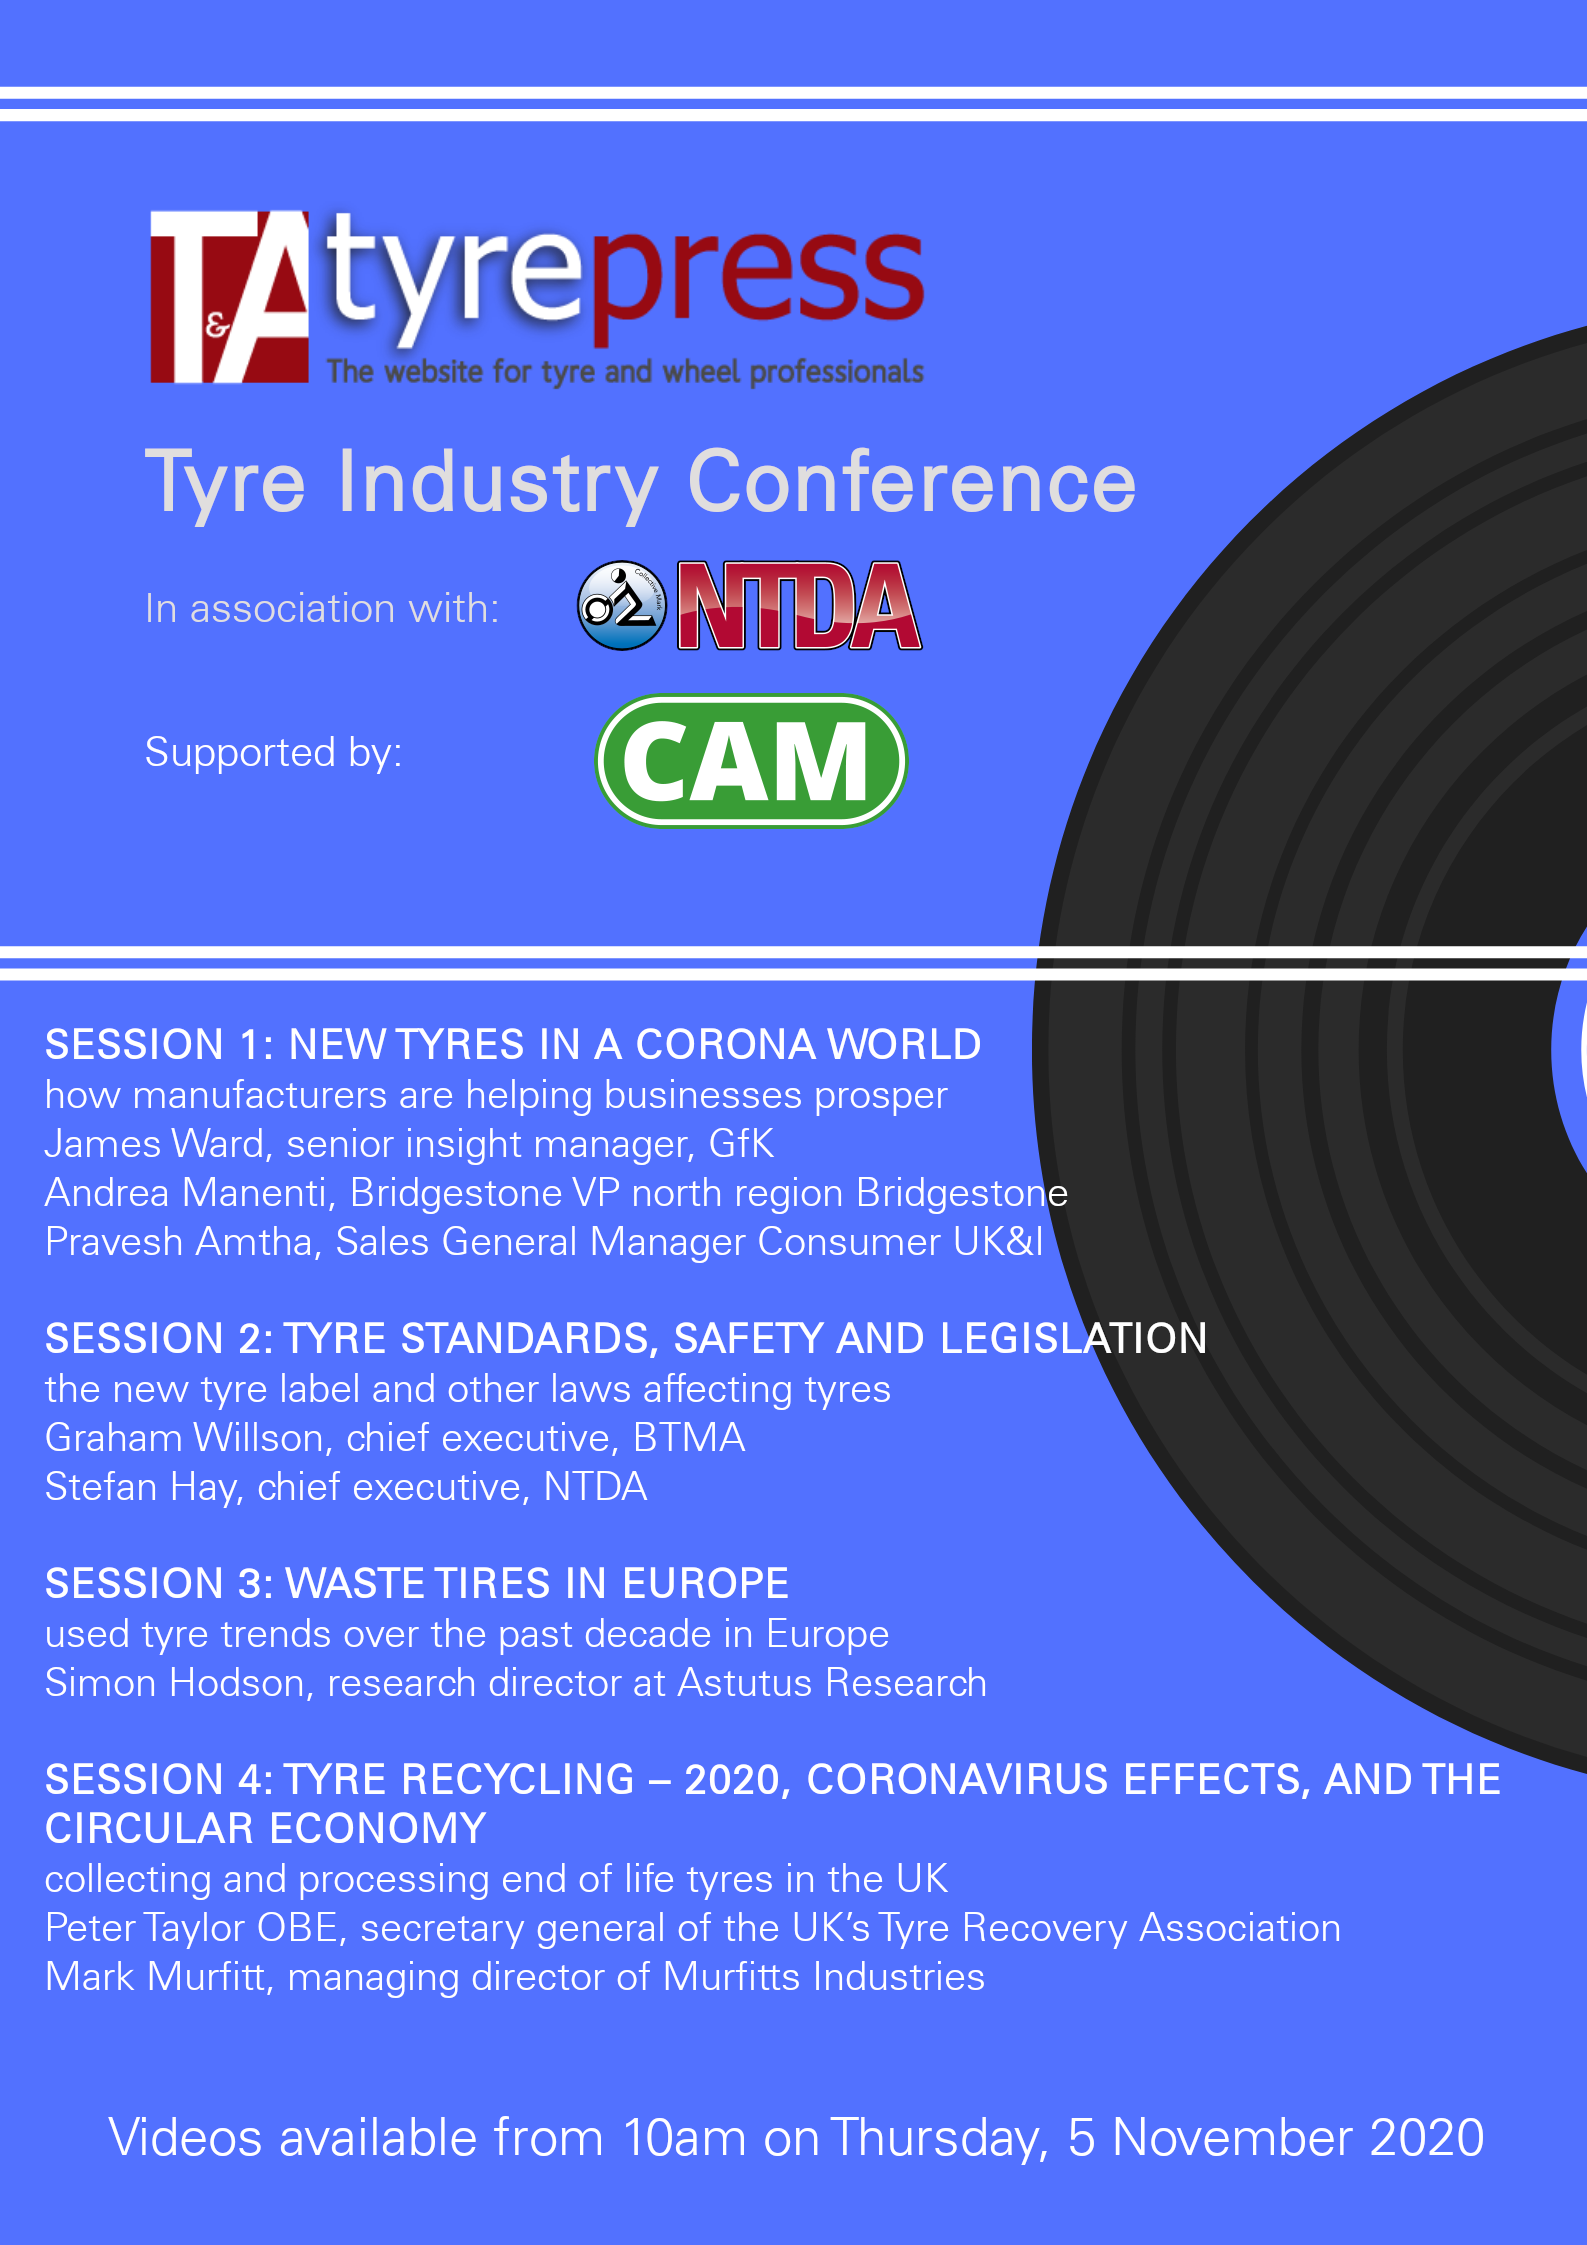 How to view the Tyre Industry Conference